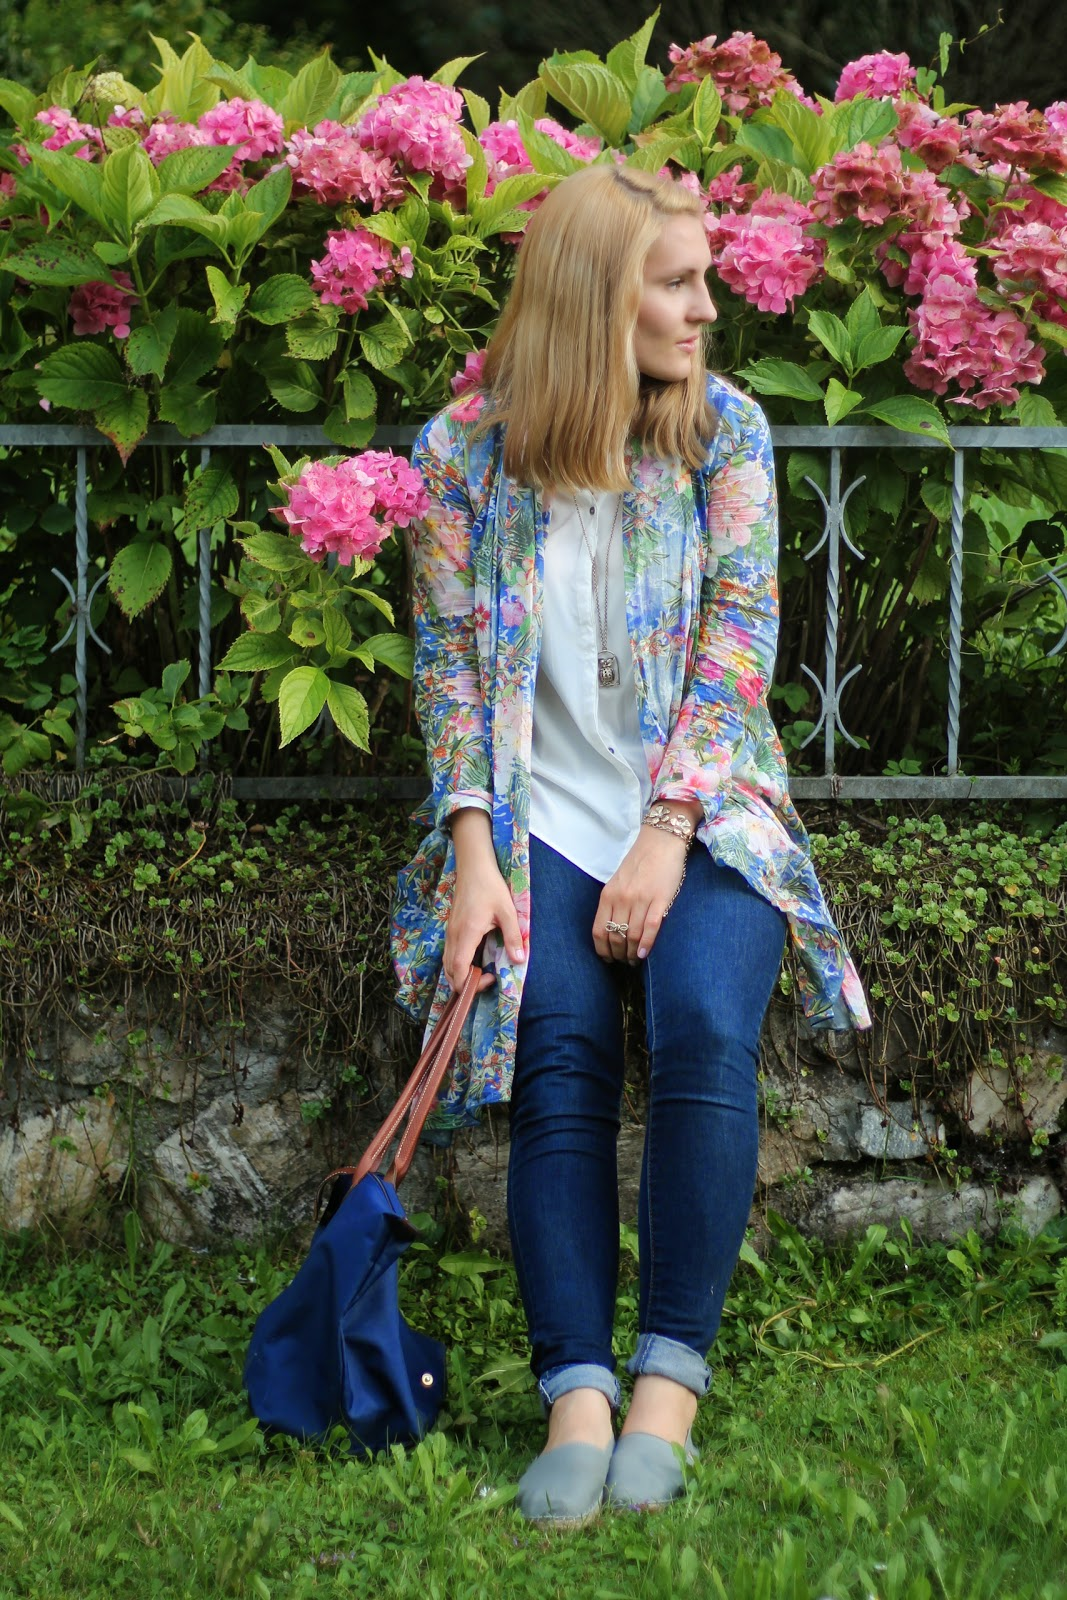 Fashionblogger Austria / Österreich / Deutsch / German / Kärnten / Carinthia / Klagenfurt / Köttmannsdorf / Spring Look / Classy / Edgy / Summer / Summer Style 2014 / Summer Look / Fashionista Look /   / Summer Look / Skinny Levis Jeans / Espadrillas Grey Espadrij / Longchamp Blue Le Pliage L / Kimono Flowers / Owl Necklace / Summer Look / How to Style KImono / Only / Forever 21 /